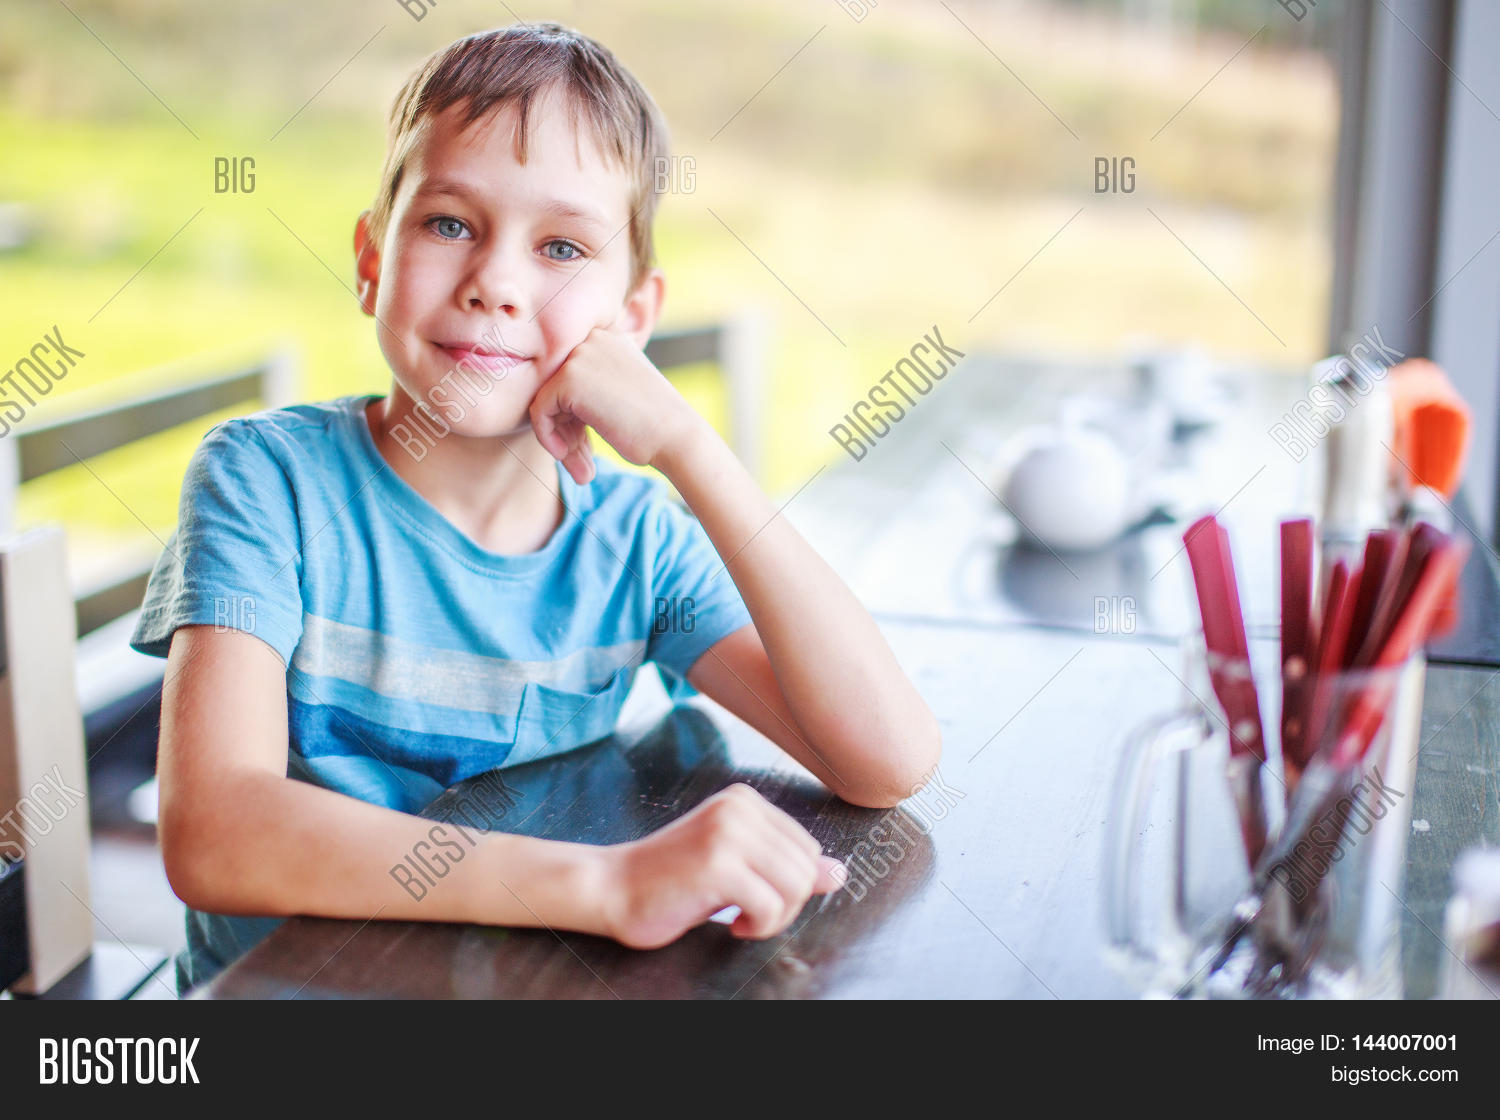 Child Cafe Waiting His Order. Cute Image & Photo | Bigstock on order art, order letter, order cute, order form, order of colors, order rainbow cake, order drinks, order biology, order nikes, order flowers, order paper, order legos, order checks, order a cake, order design, order frozen cakes, order water, order stroopwafels, order carnivore, order pizza,